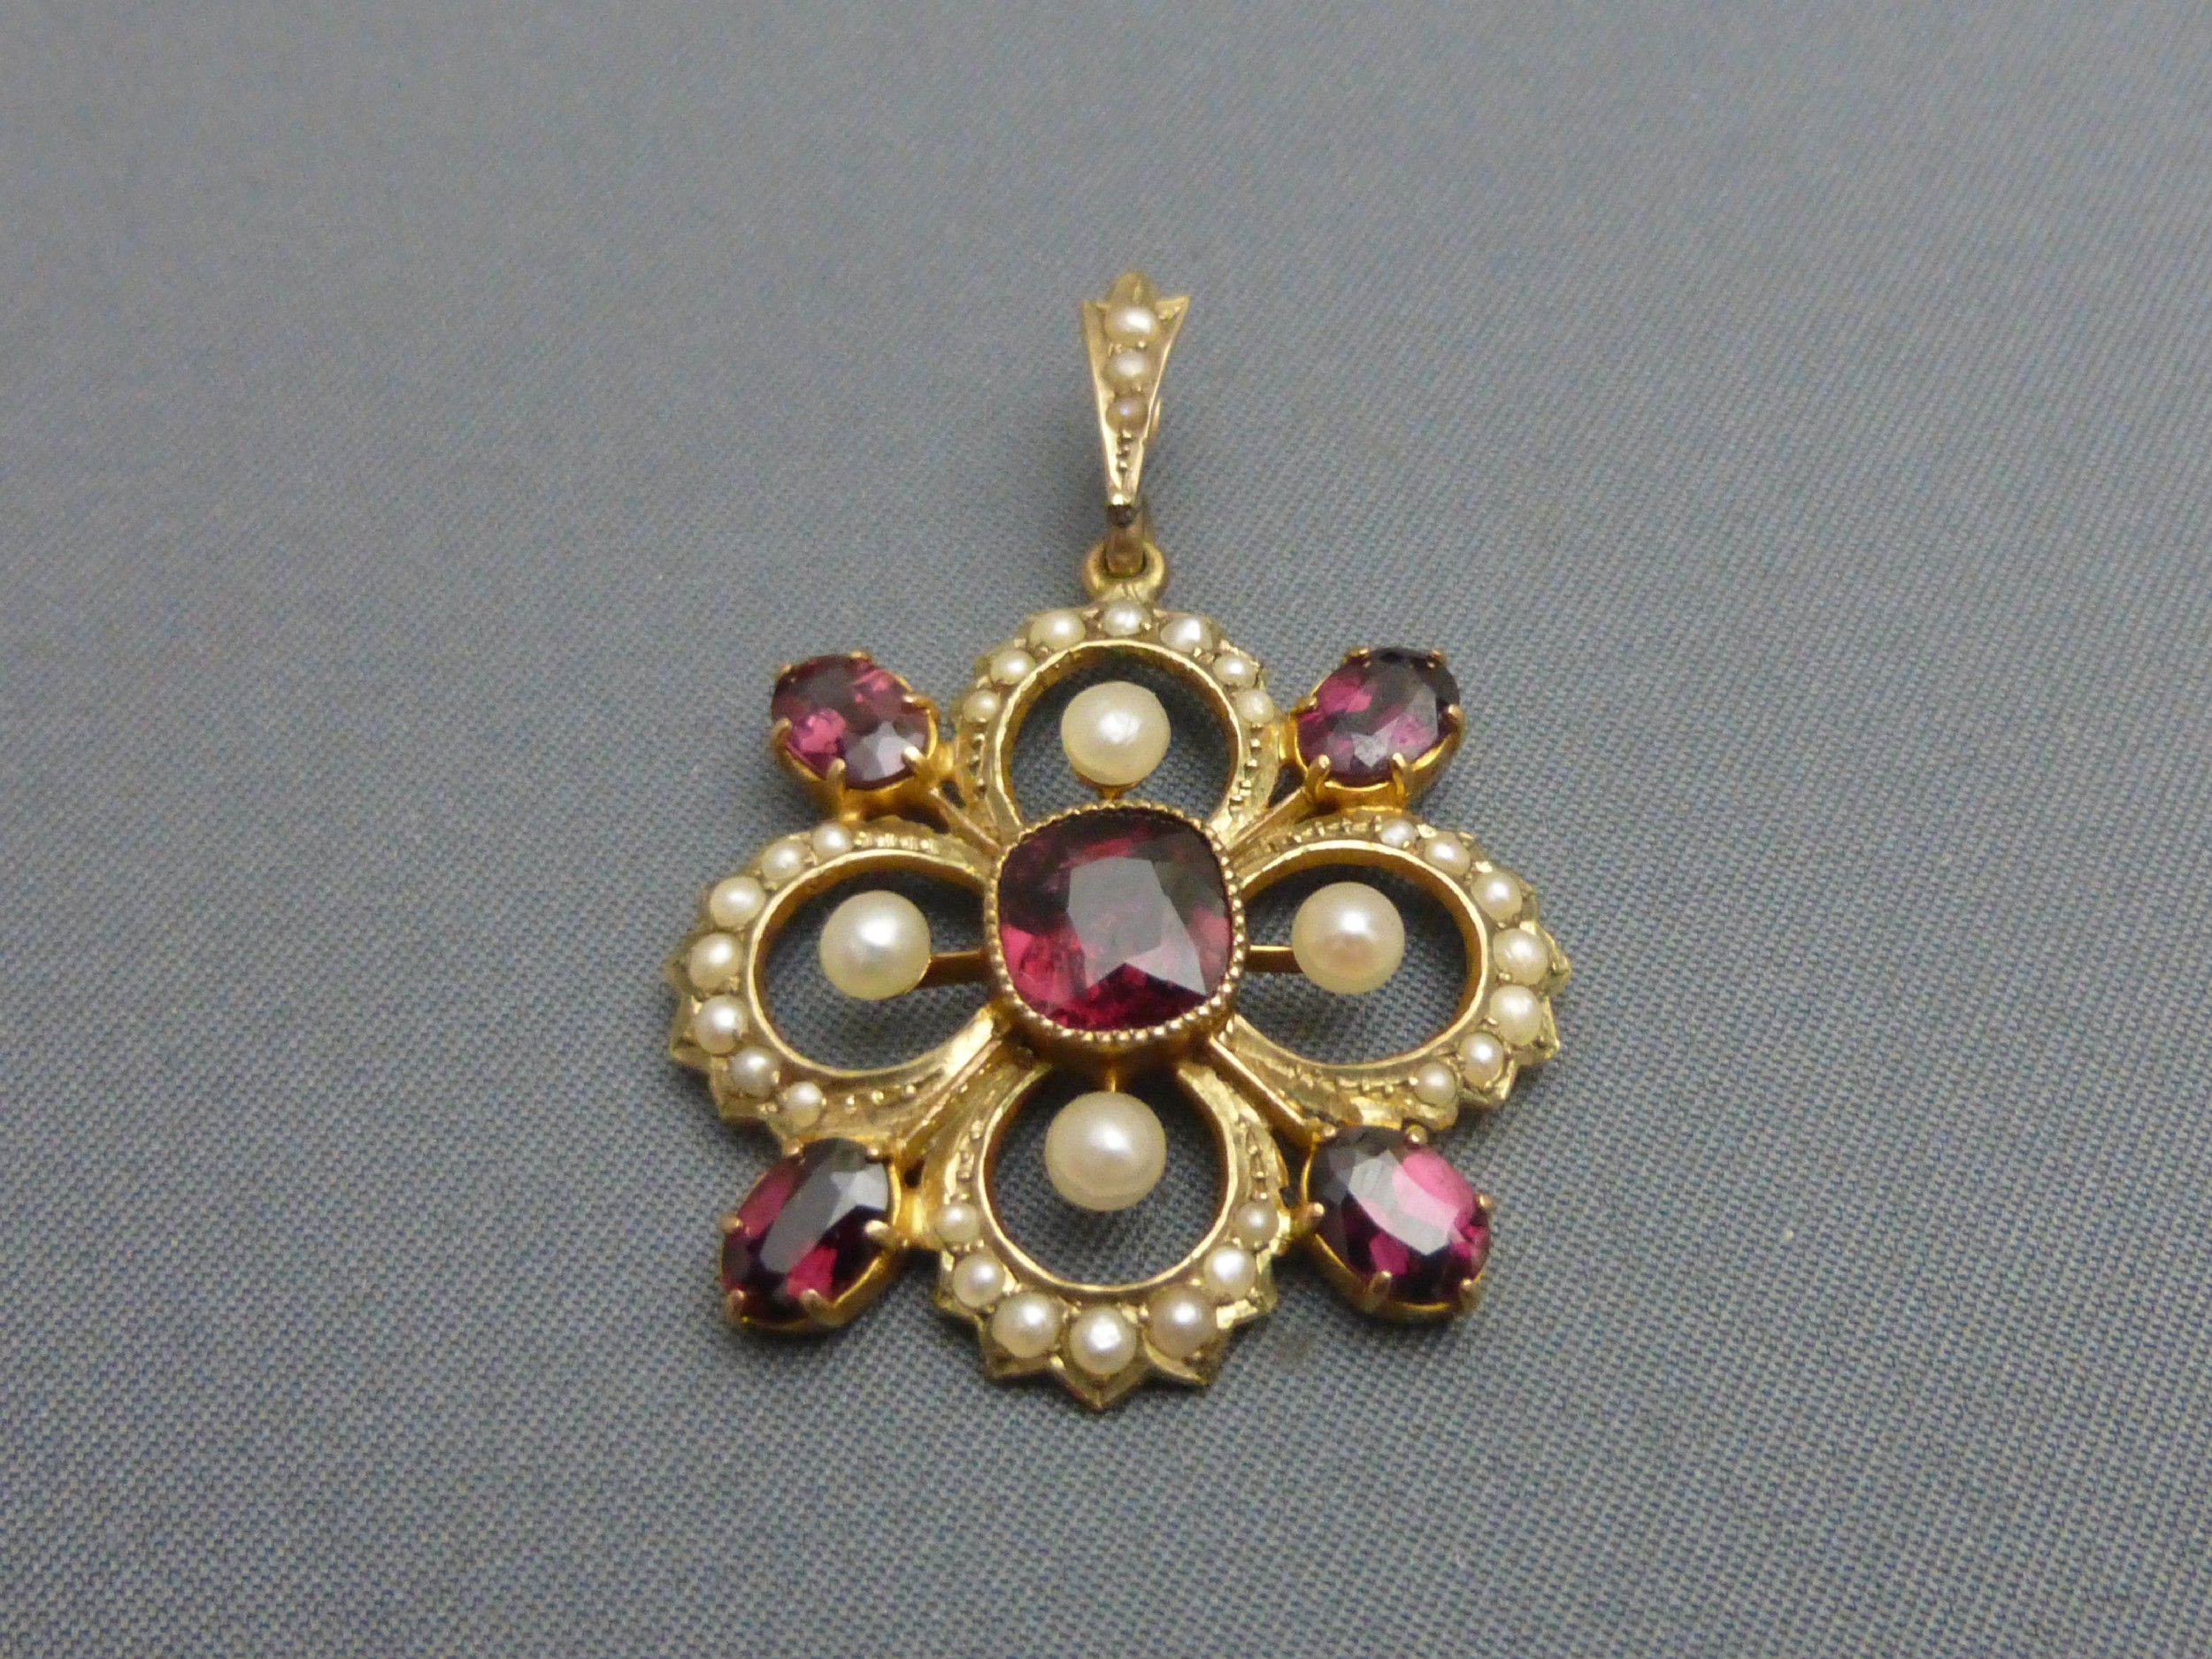 9ct gold pearl and garnet pendant